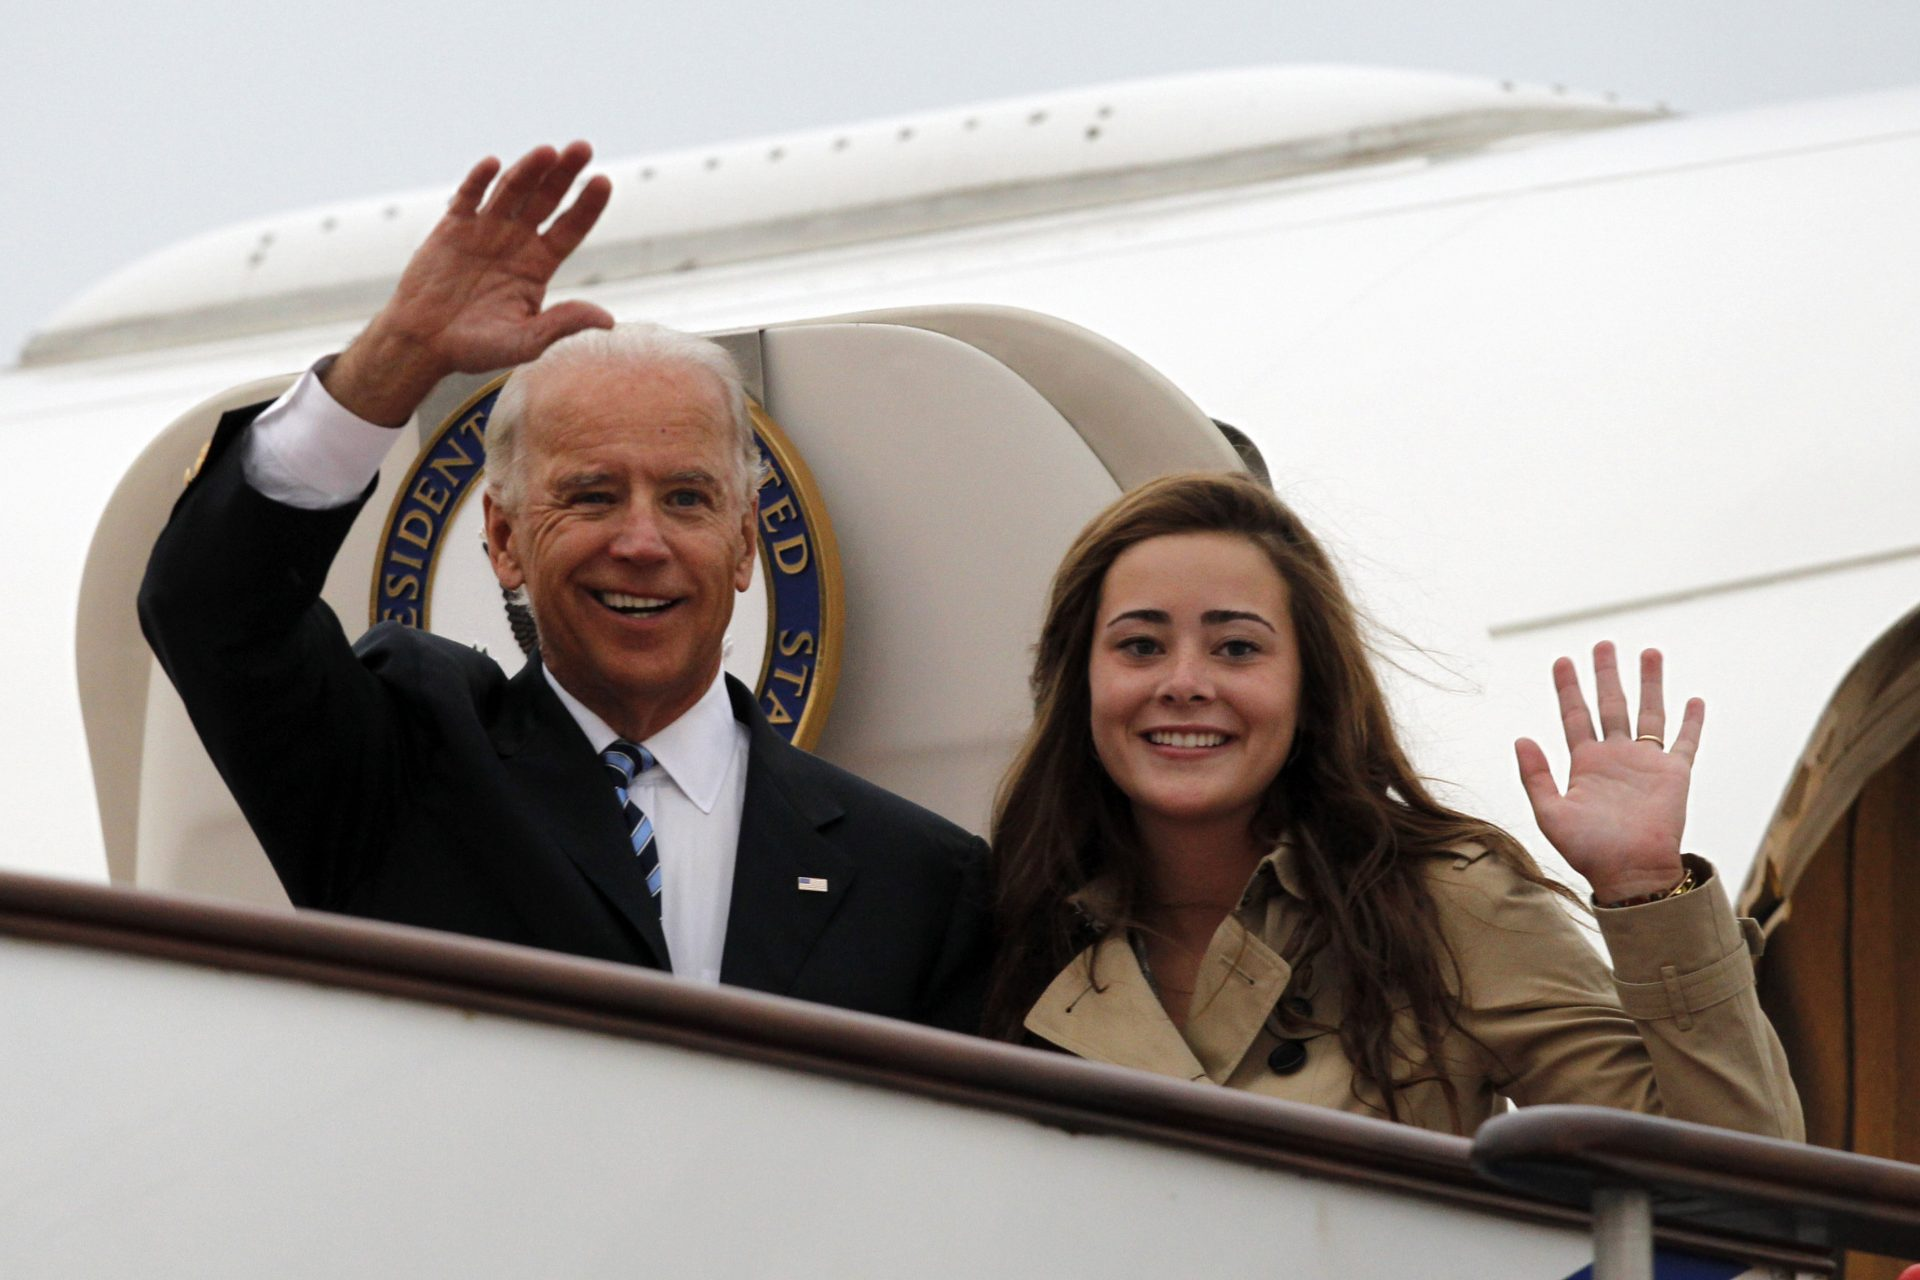 Naomi Biden, the president's granddaughter, is a real influencer